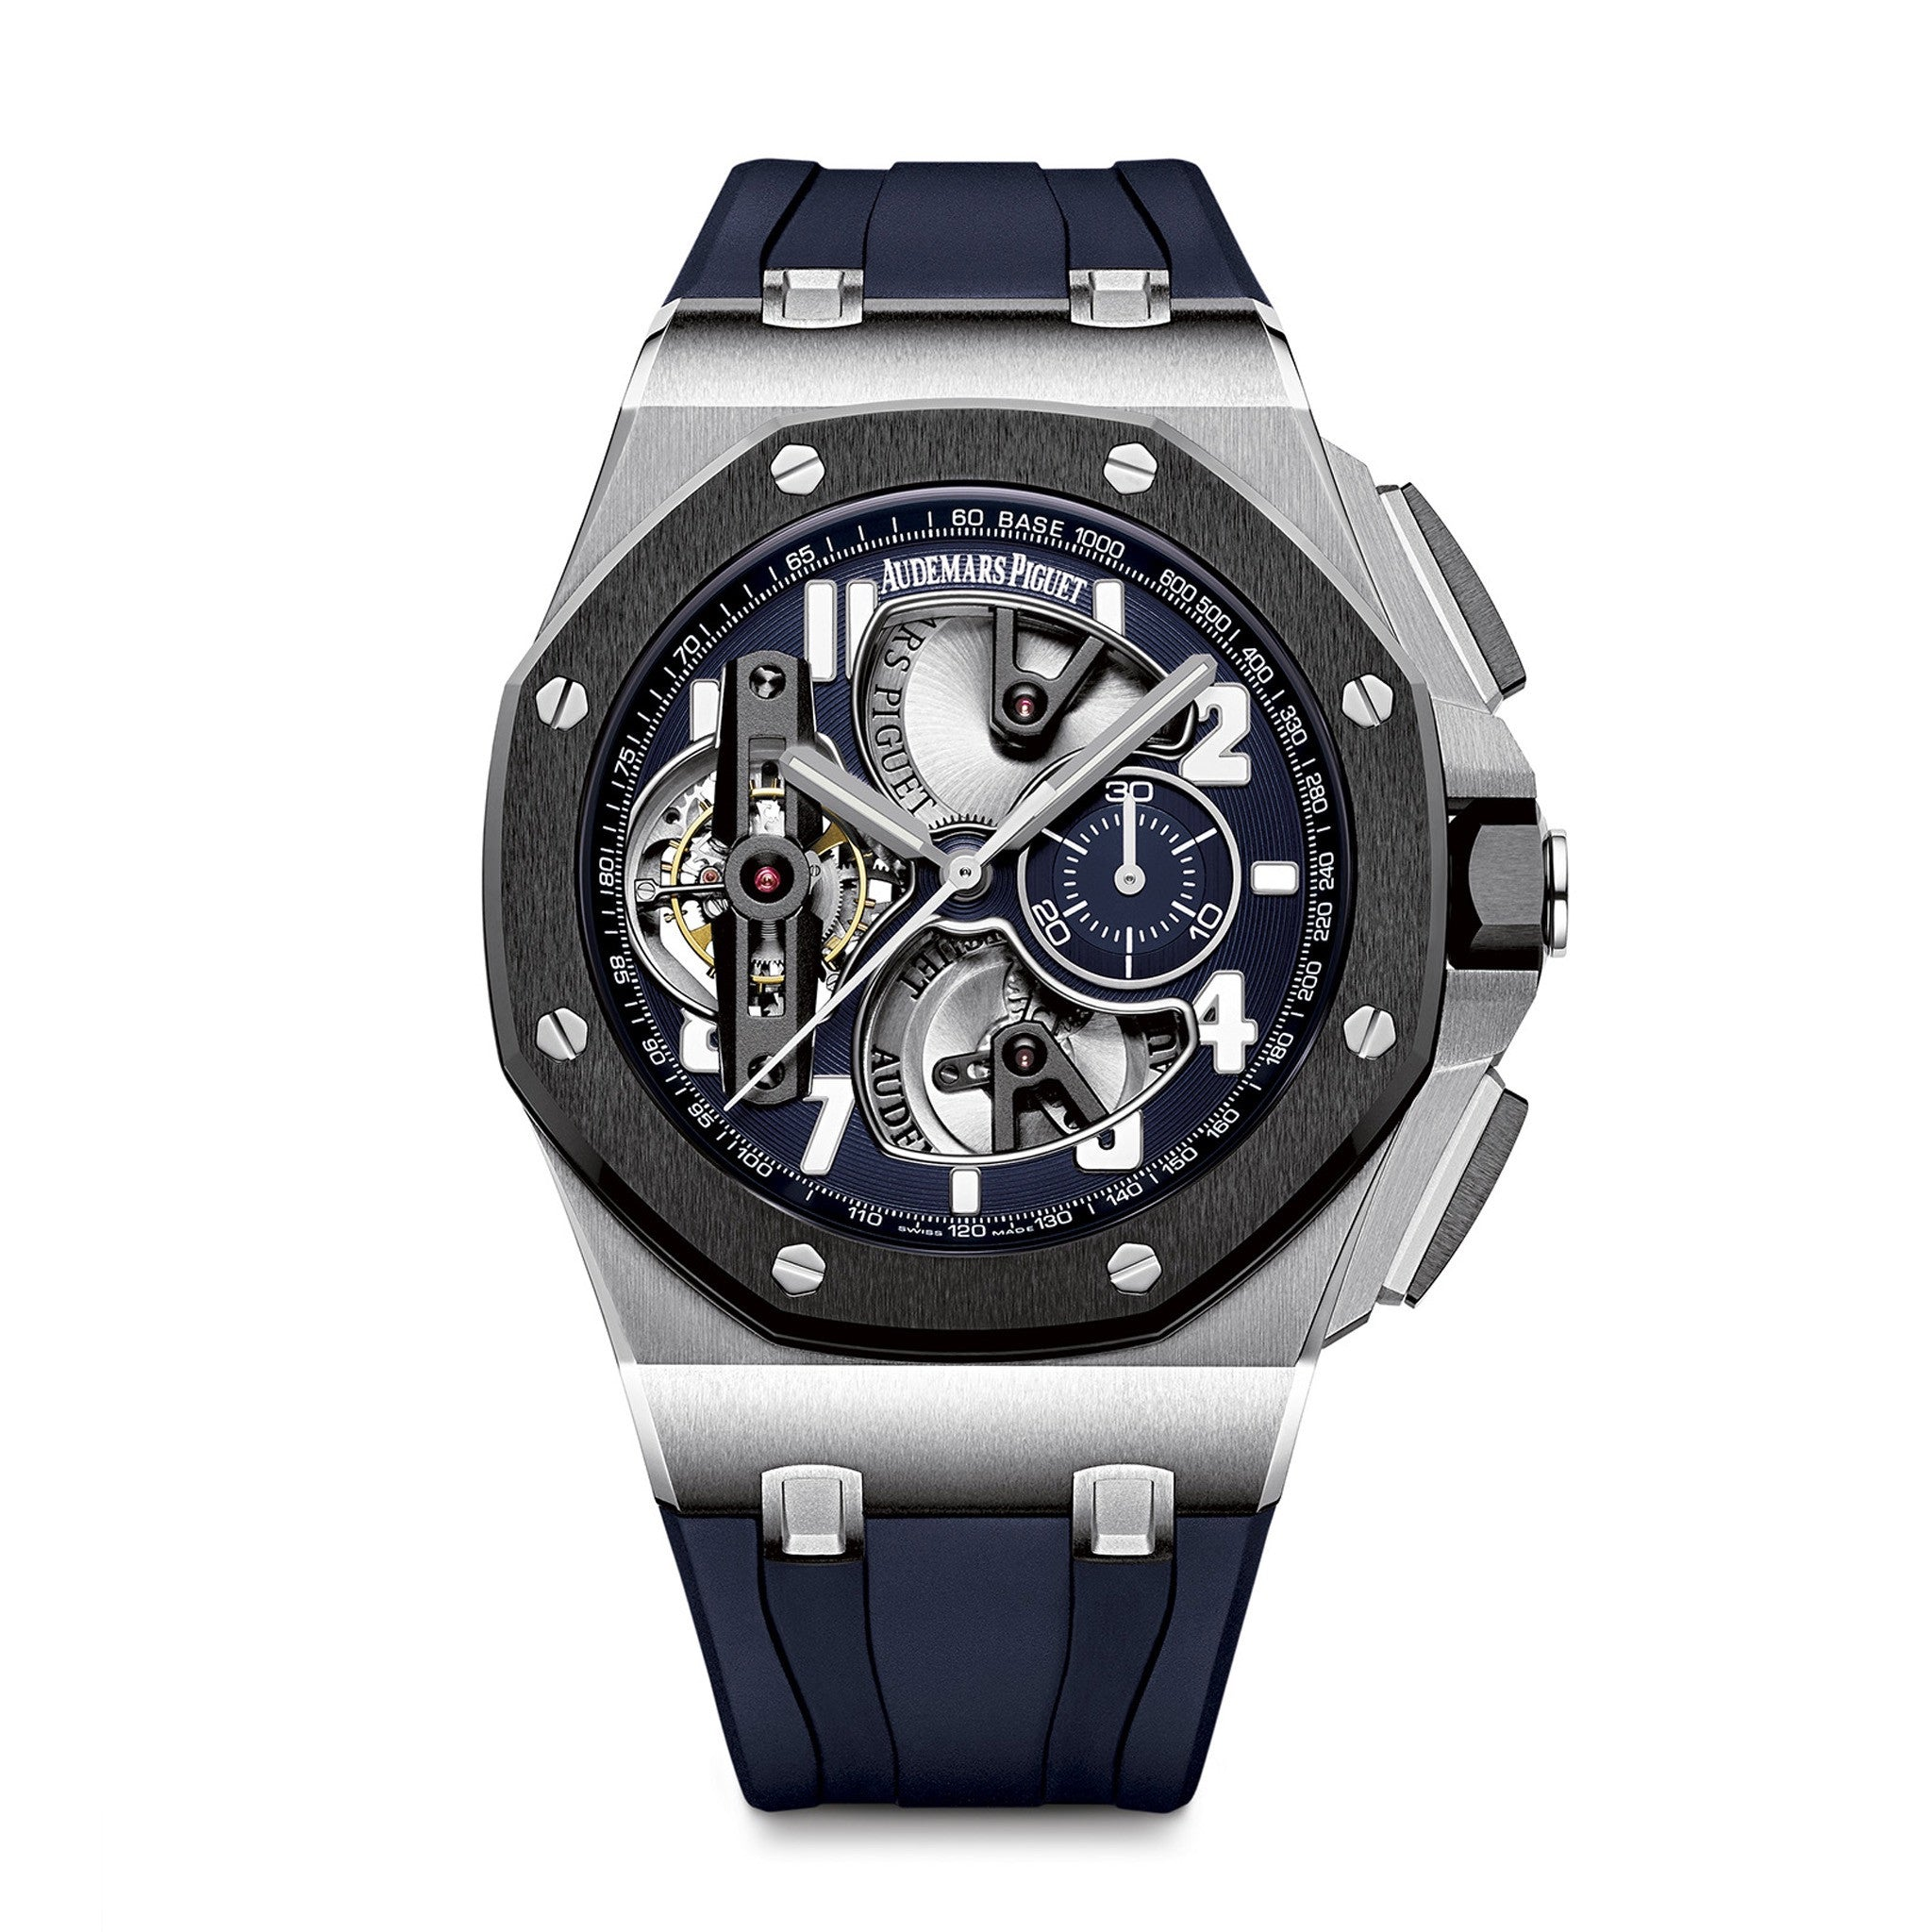 Royal Oak Offshore Tourbillon Chronograph 26388PO.OO.D027CA.01 - Audemars Piguet